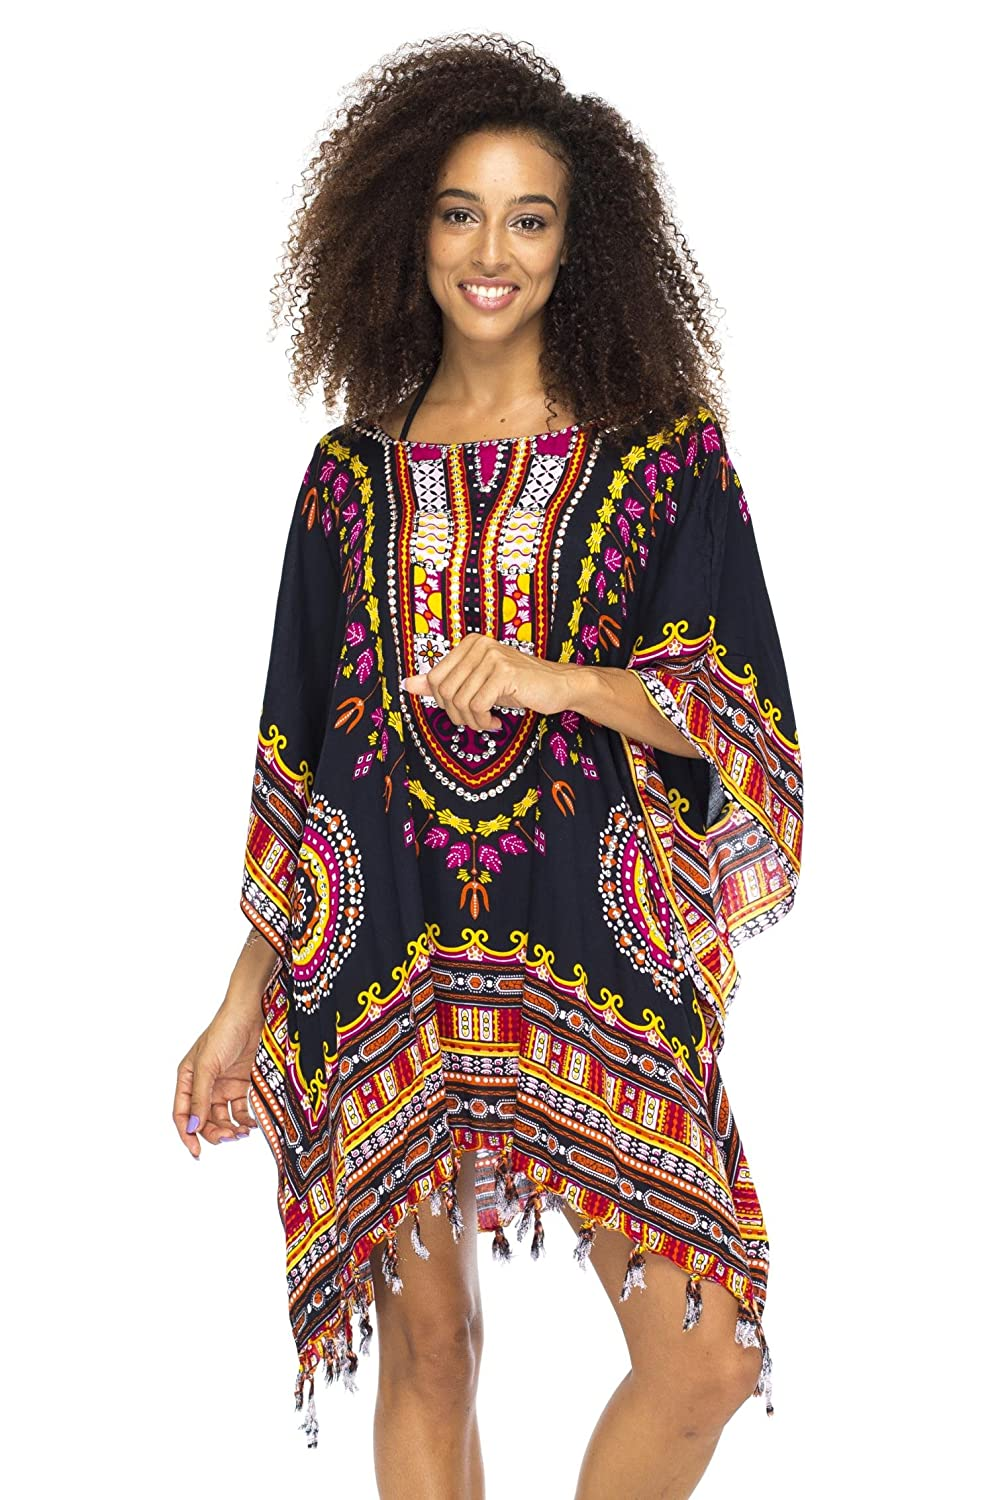 63235531f8 Bright African colors in a vibrant tribal print give this Long Caftan Bathing  Suit Cover Up a calypso boho vibe; perfect at the beach or pool